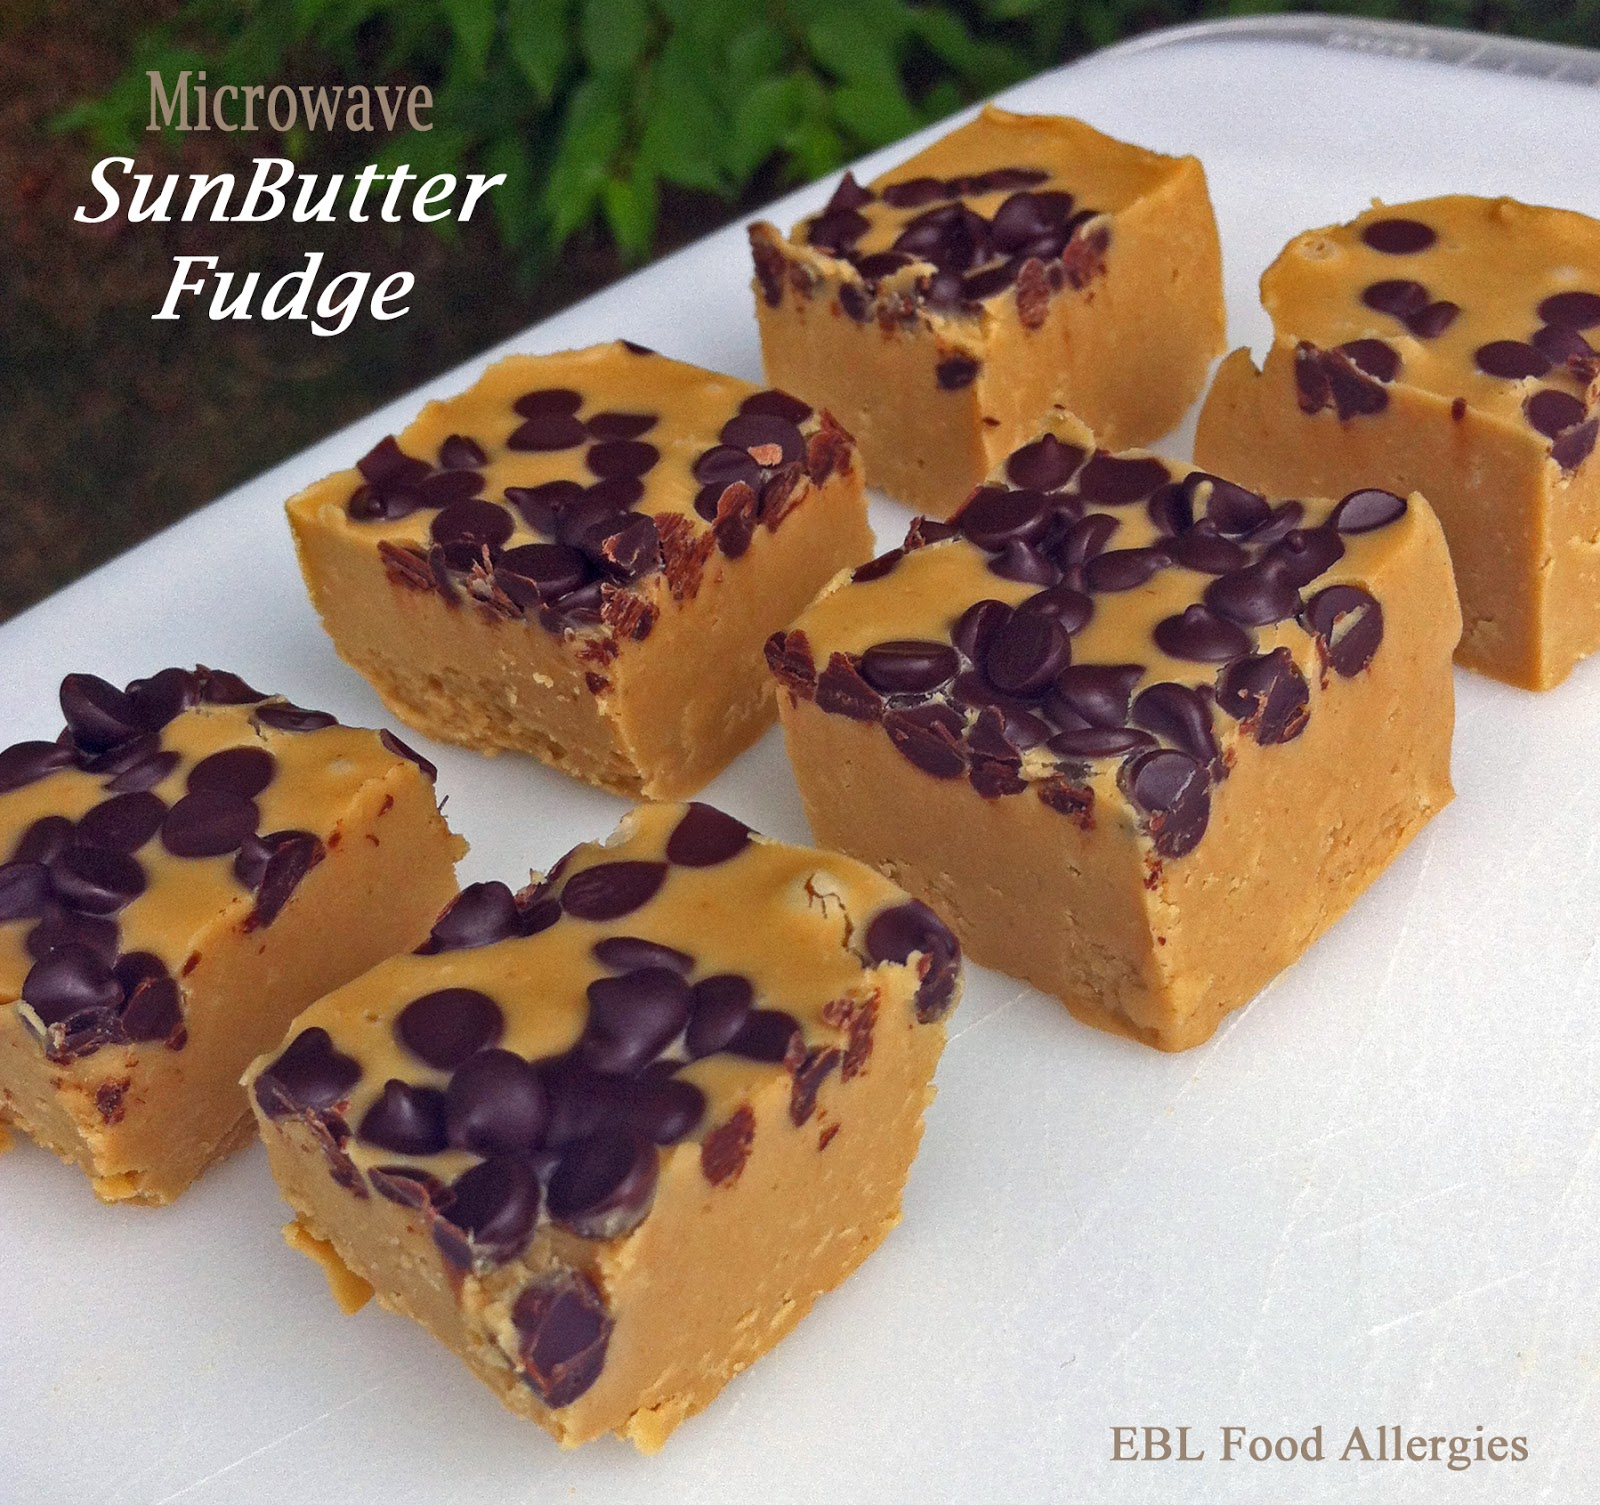 Allergy-Friendly Microwave SunButter Fudge - EBL Food Allergies